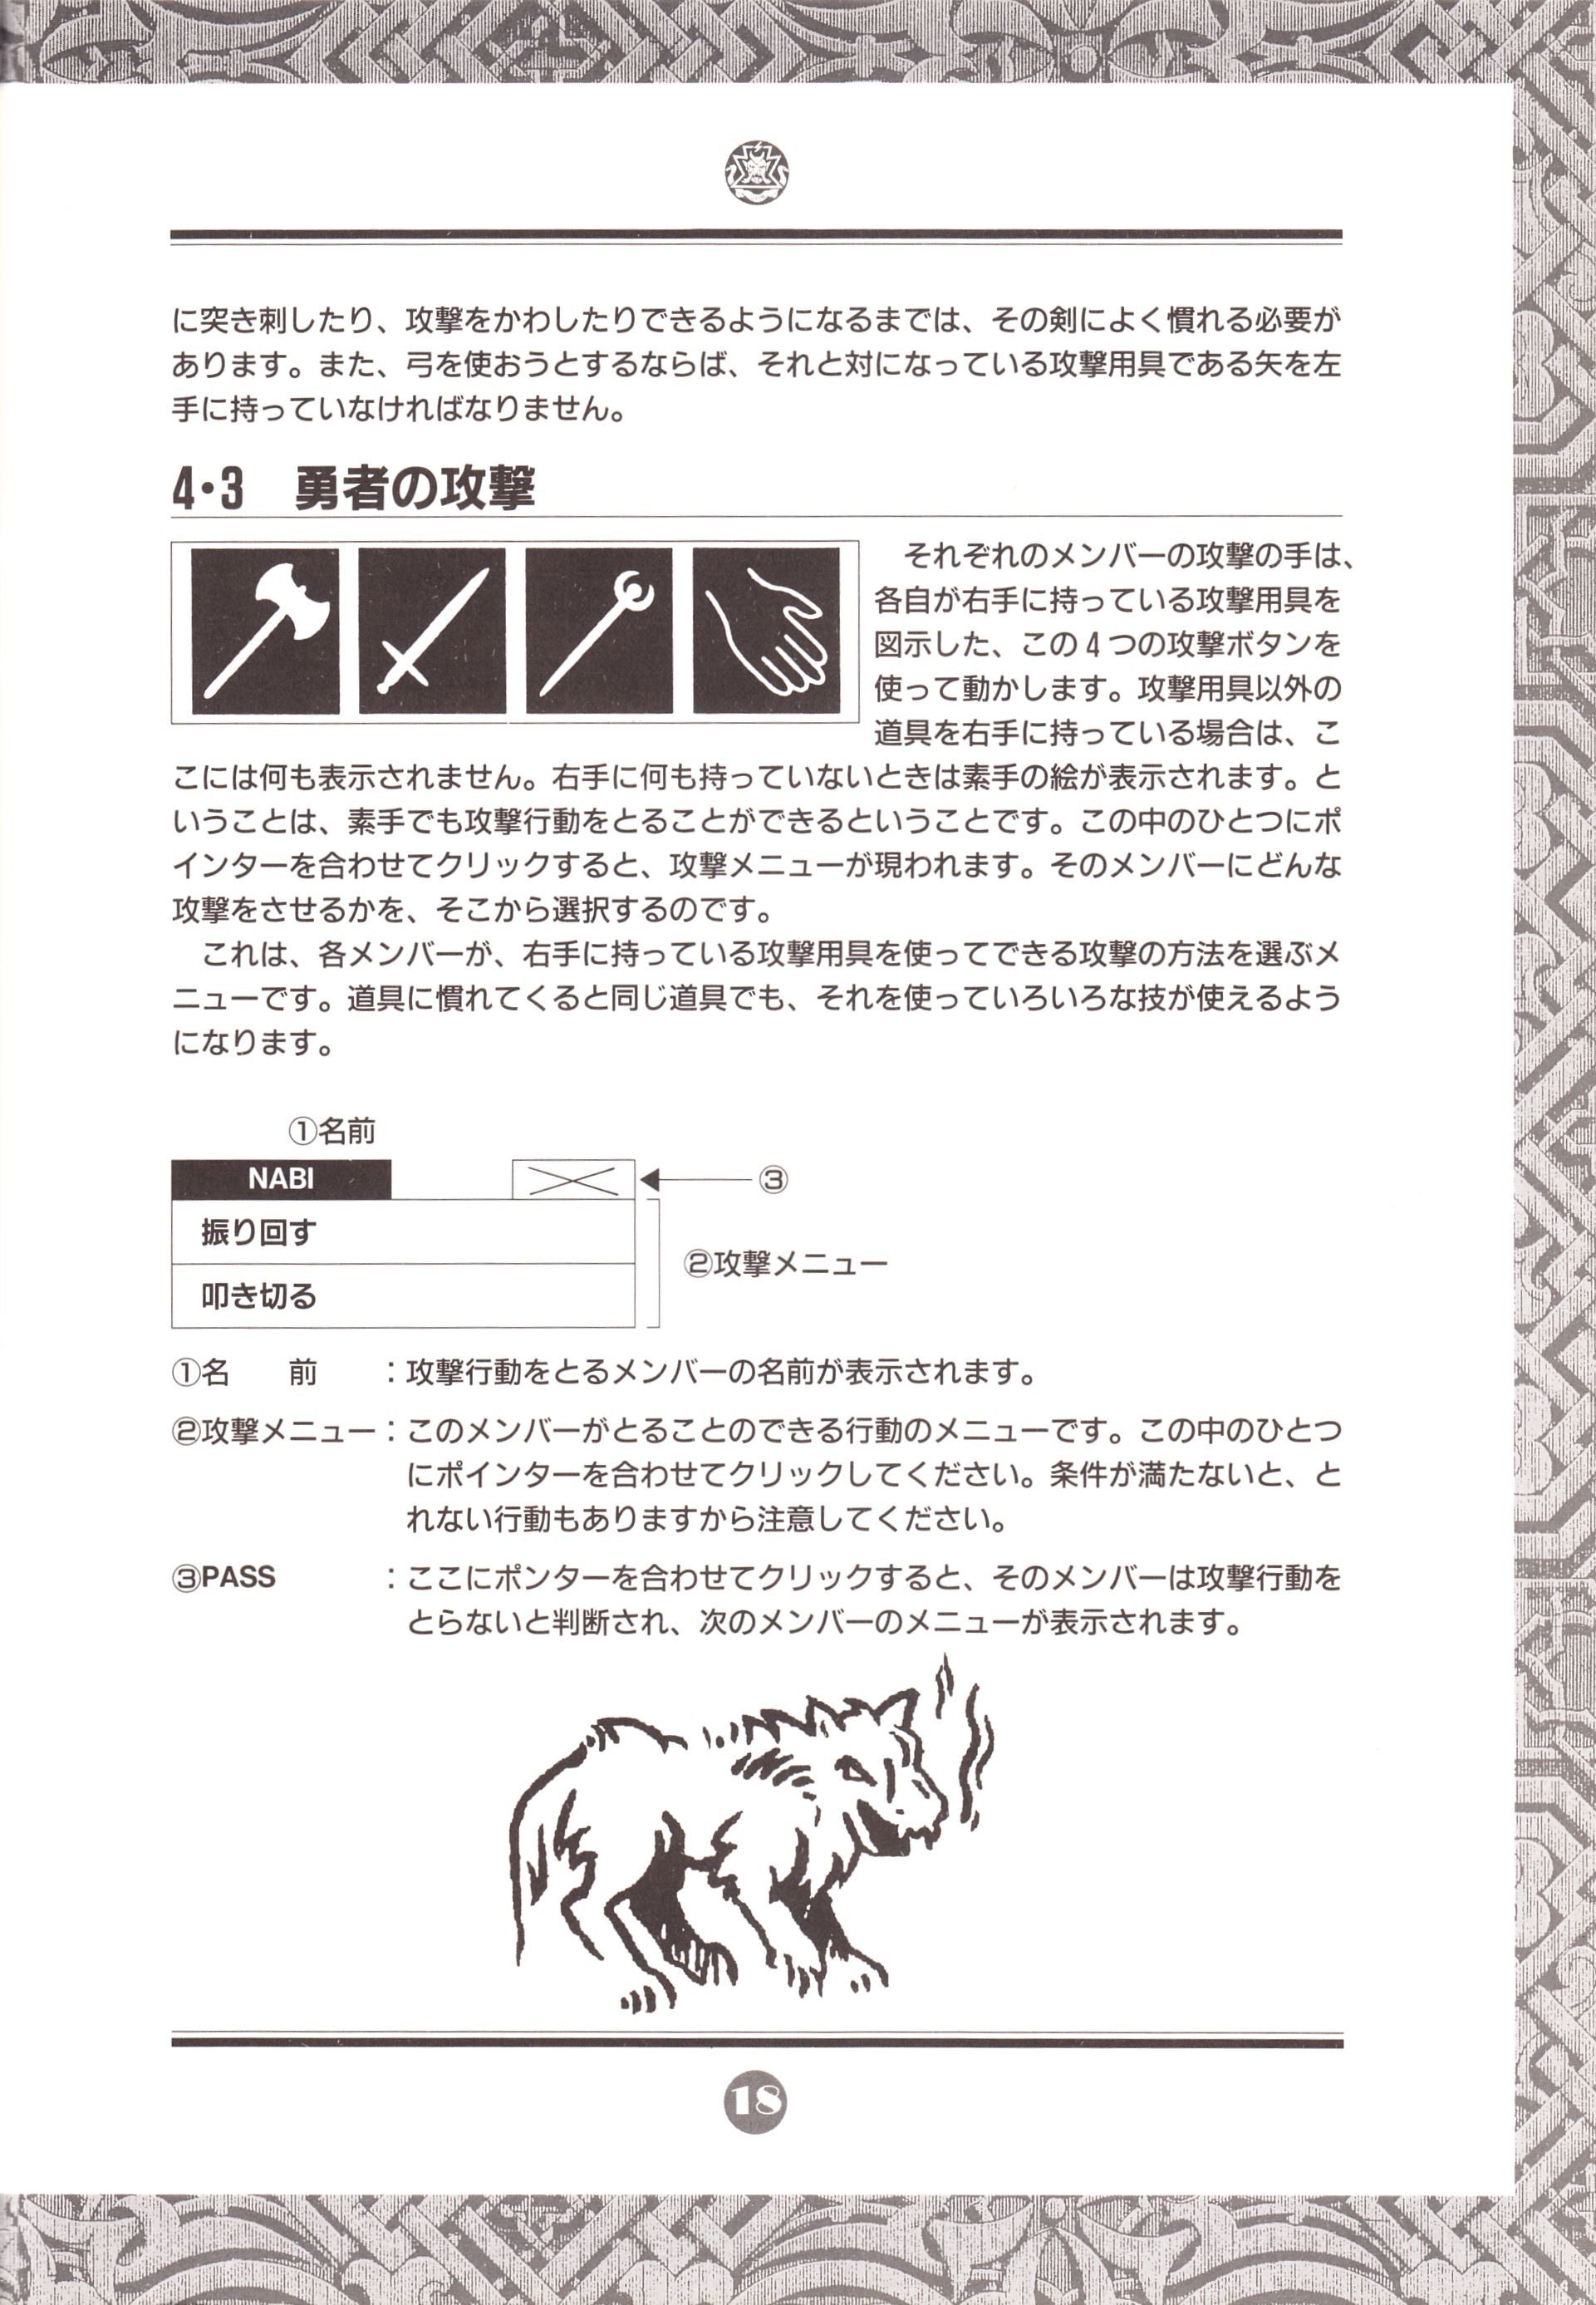 Game - Chaos Strikes Back - JP - PC-9801 - 3-5-inch - An Operation Manual - Page 021 - Scan